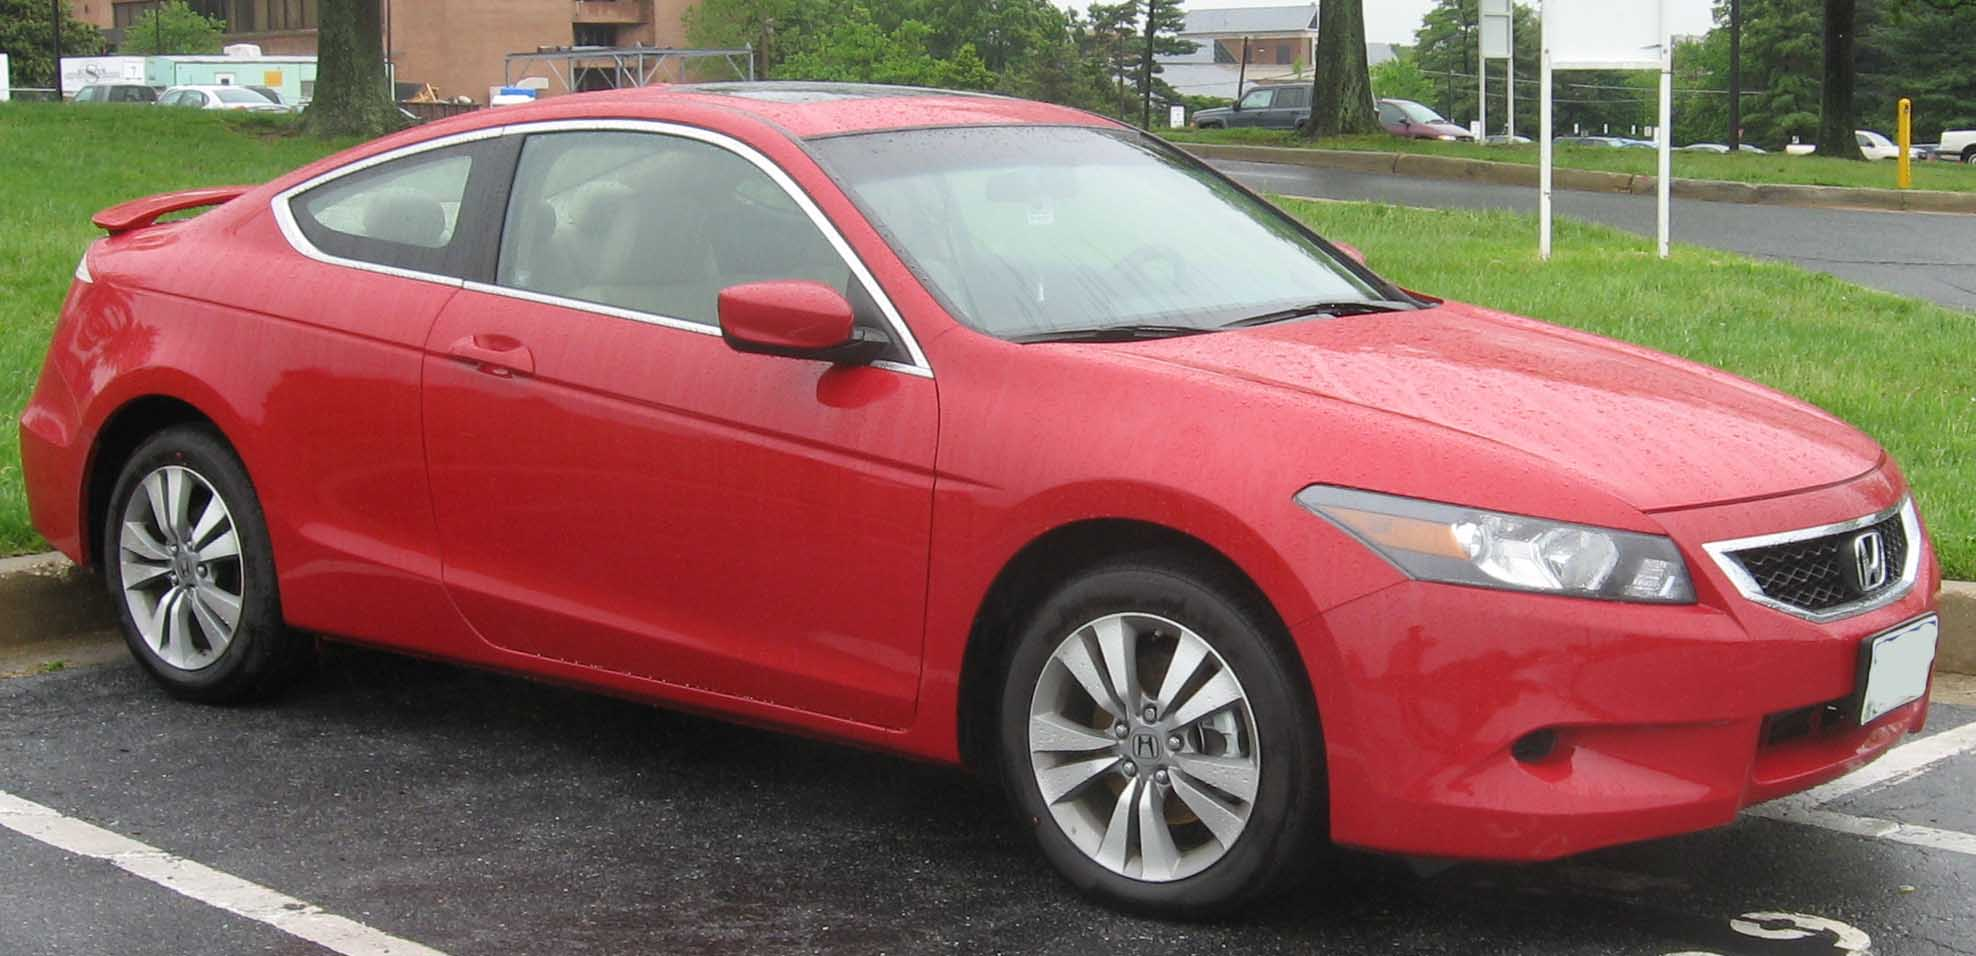 Honda accord specifications